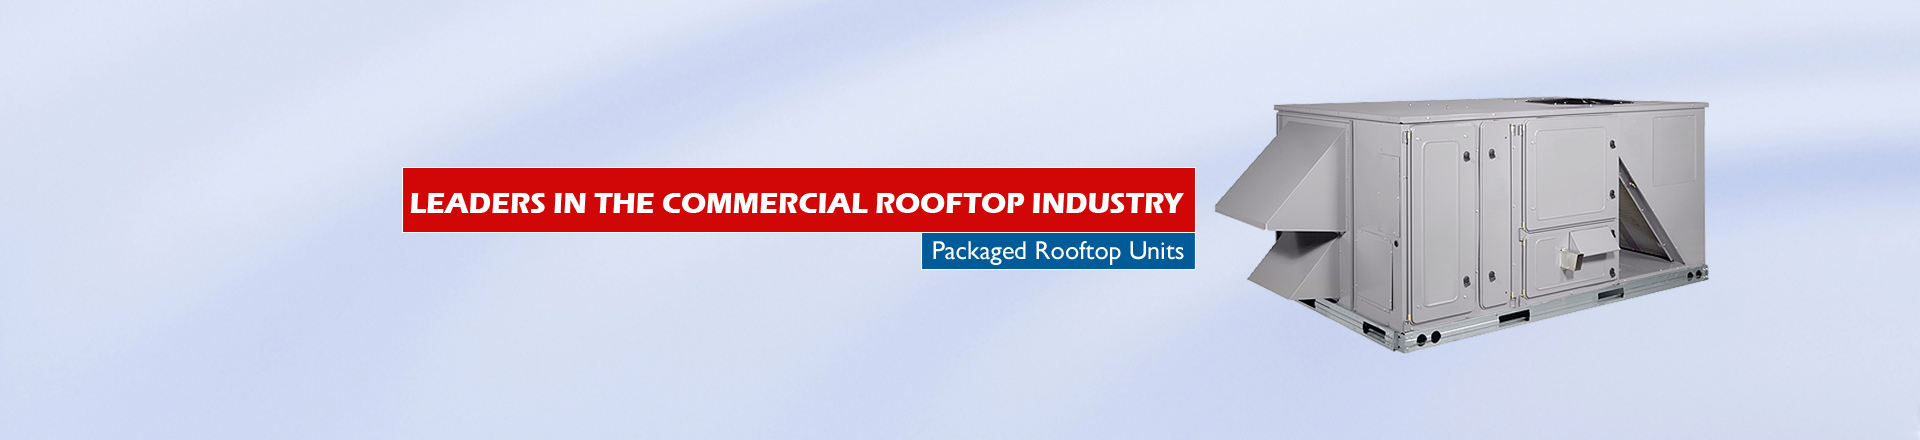 Packaged-Rooftop-Units1